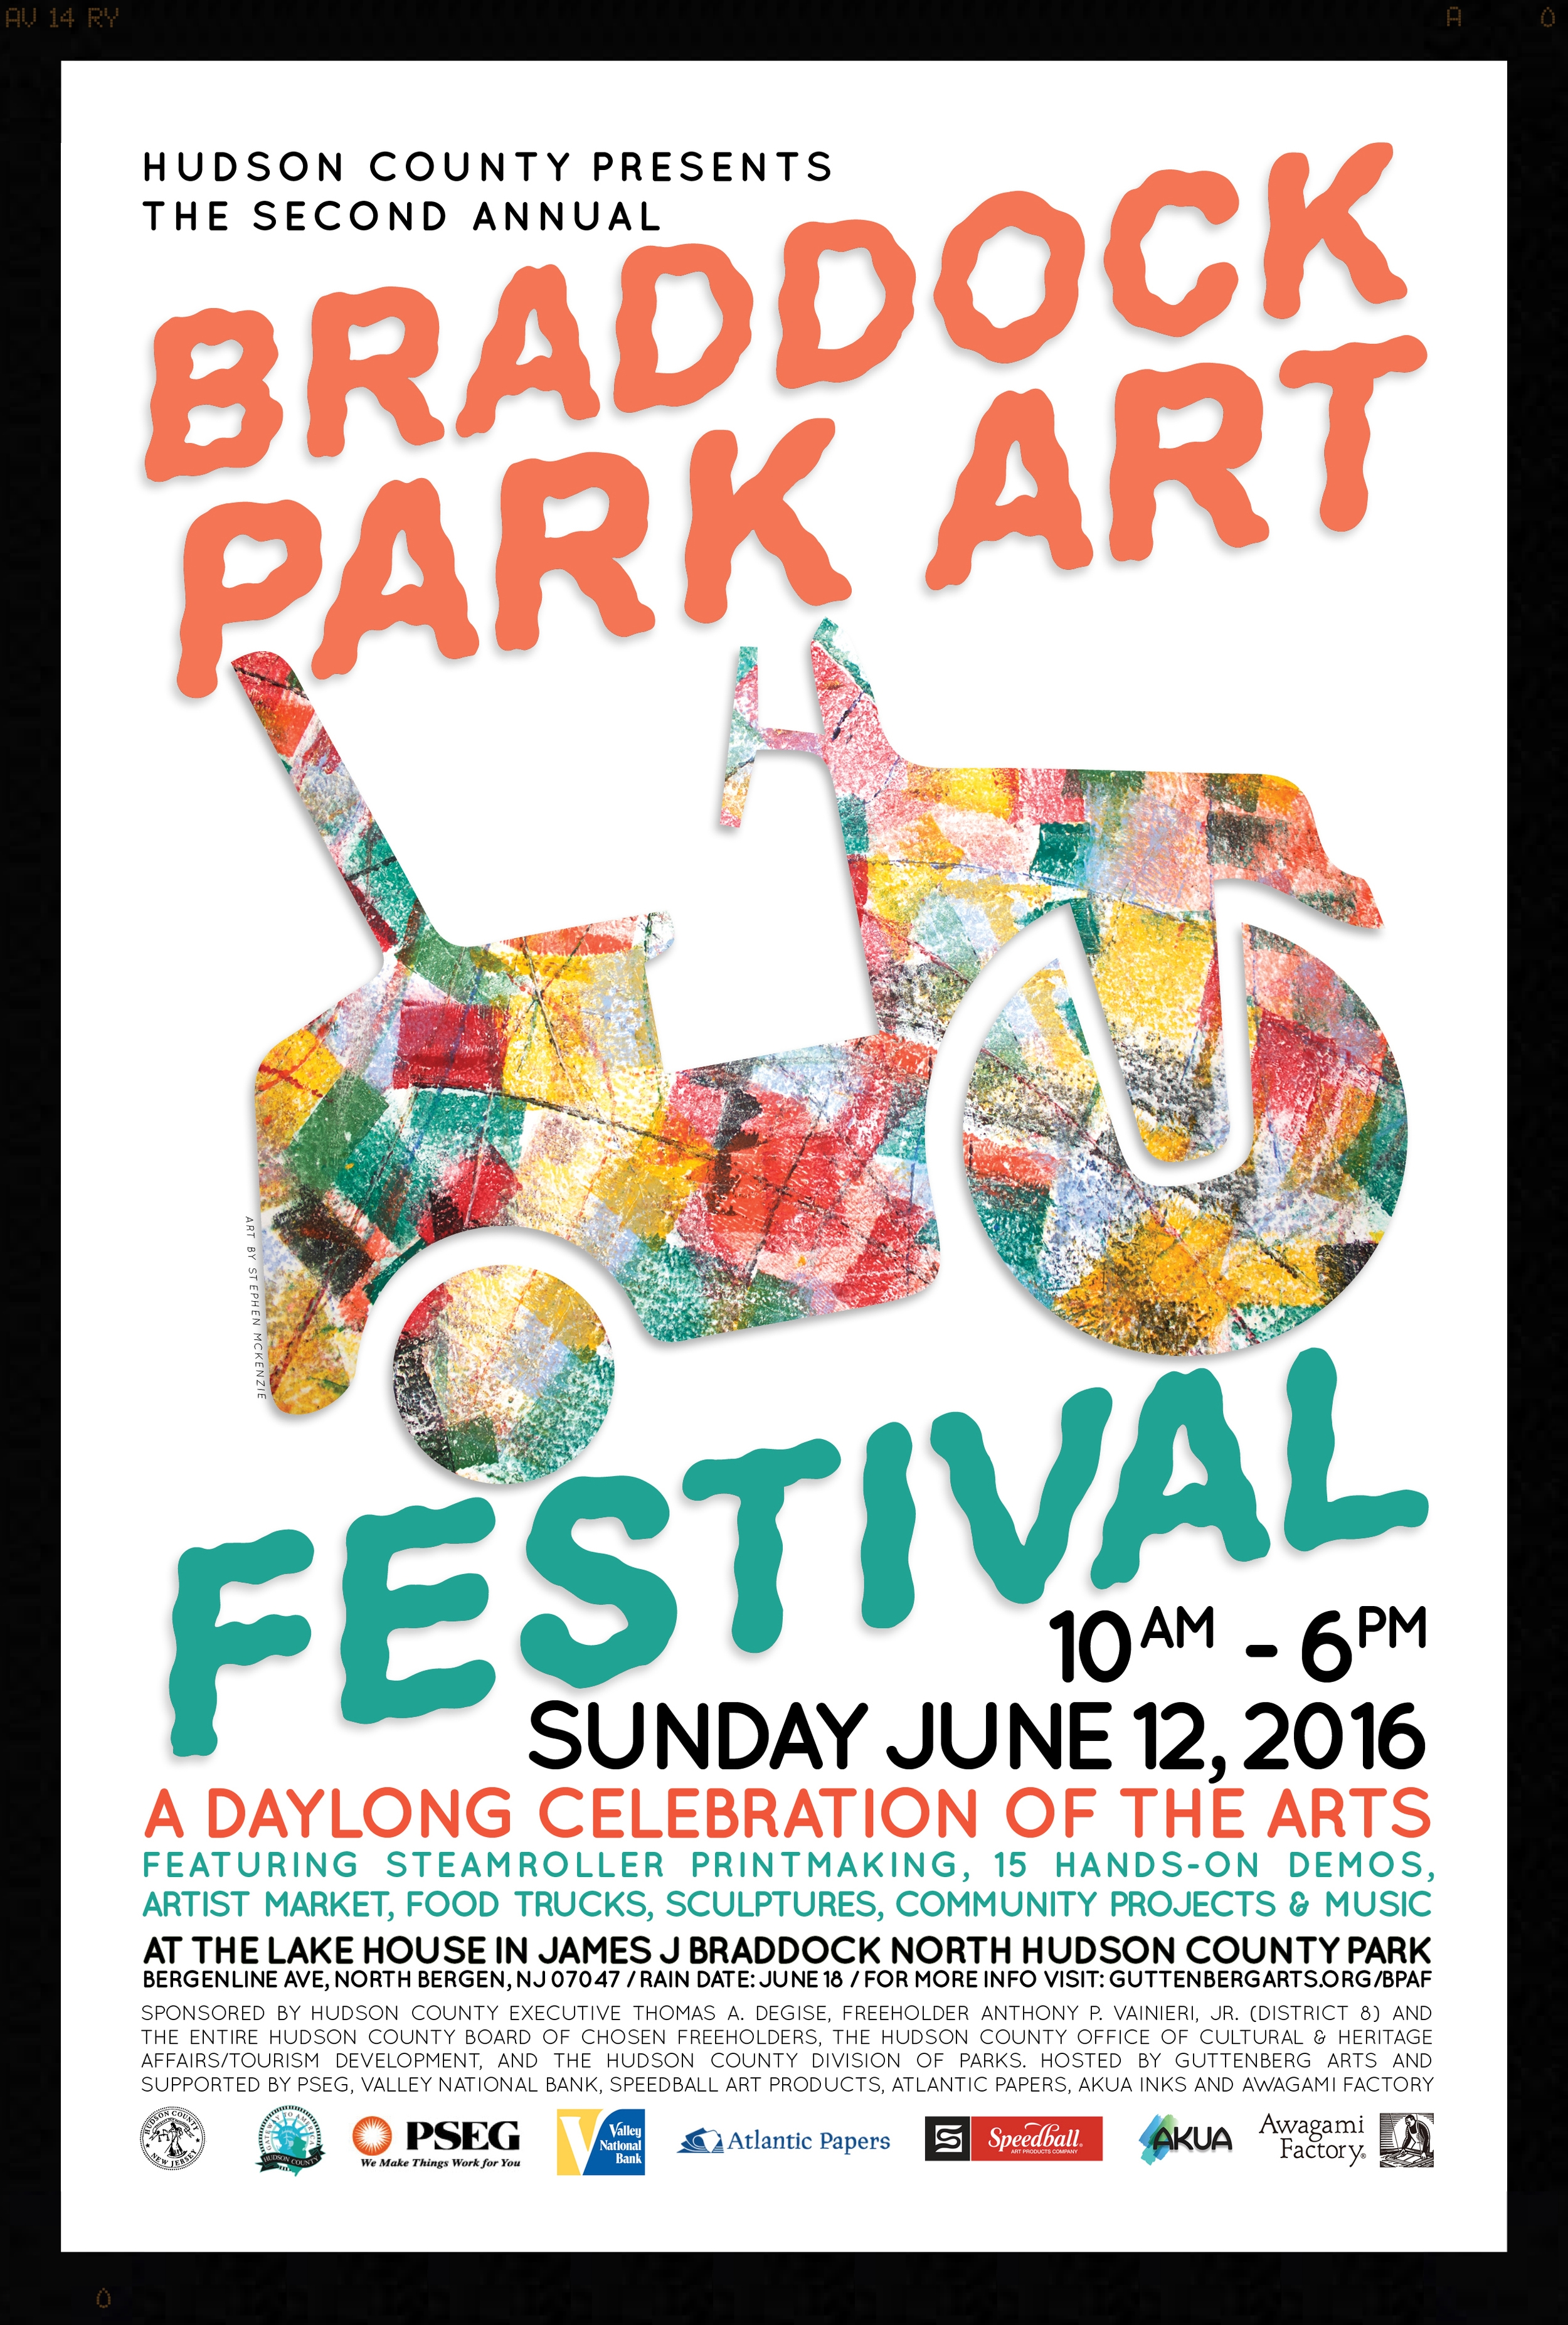 We would like to thank the sponsors of the 2nd Annual Braddock Park Arts Festival for their generous contributions towards making the June 12th event such a great success. PSEG, the J. Fletcher Creamer Foundation, Carepoint Health, Valley National Bank, Lime Taxi, GPs Restaurant, and UFC gym demonstrated they recognize the important role design and visual arts can play in the lives of Hudson County residents. Similarly, material and in-kind donations from Atlantic Papers, Speedball Art Products, Awagami Factory, Akua Inks, Ceramic Supply Inc., The Compleat Sculptor, HCB Distribution and Remco Press were invaluable to this event overall. The impact of their support will be felt long term.    Now in its second year, the Braddock Park Arts Festival attracted more than four thousand people throughout the day with double the number of attendees since last year. We are proud of the partnership formed with Guttenberg Arts, the the County Executive's Office, the Hudson County Board of Chosen Freeholders, Hudson County Division of Cultural & Heritage Affairs/Tourism Development and our sponsors on the 2nd AnnualBraddock Park Arts Festival and hope it will continue for years to come.